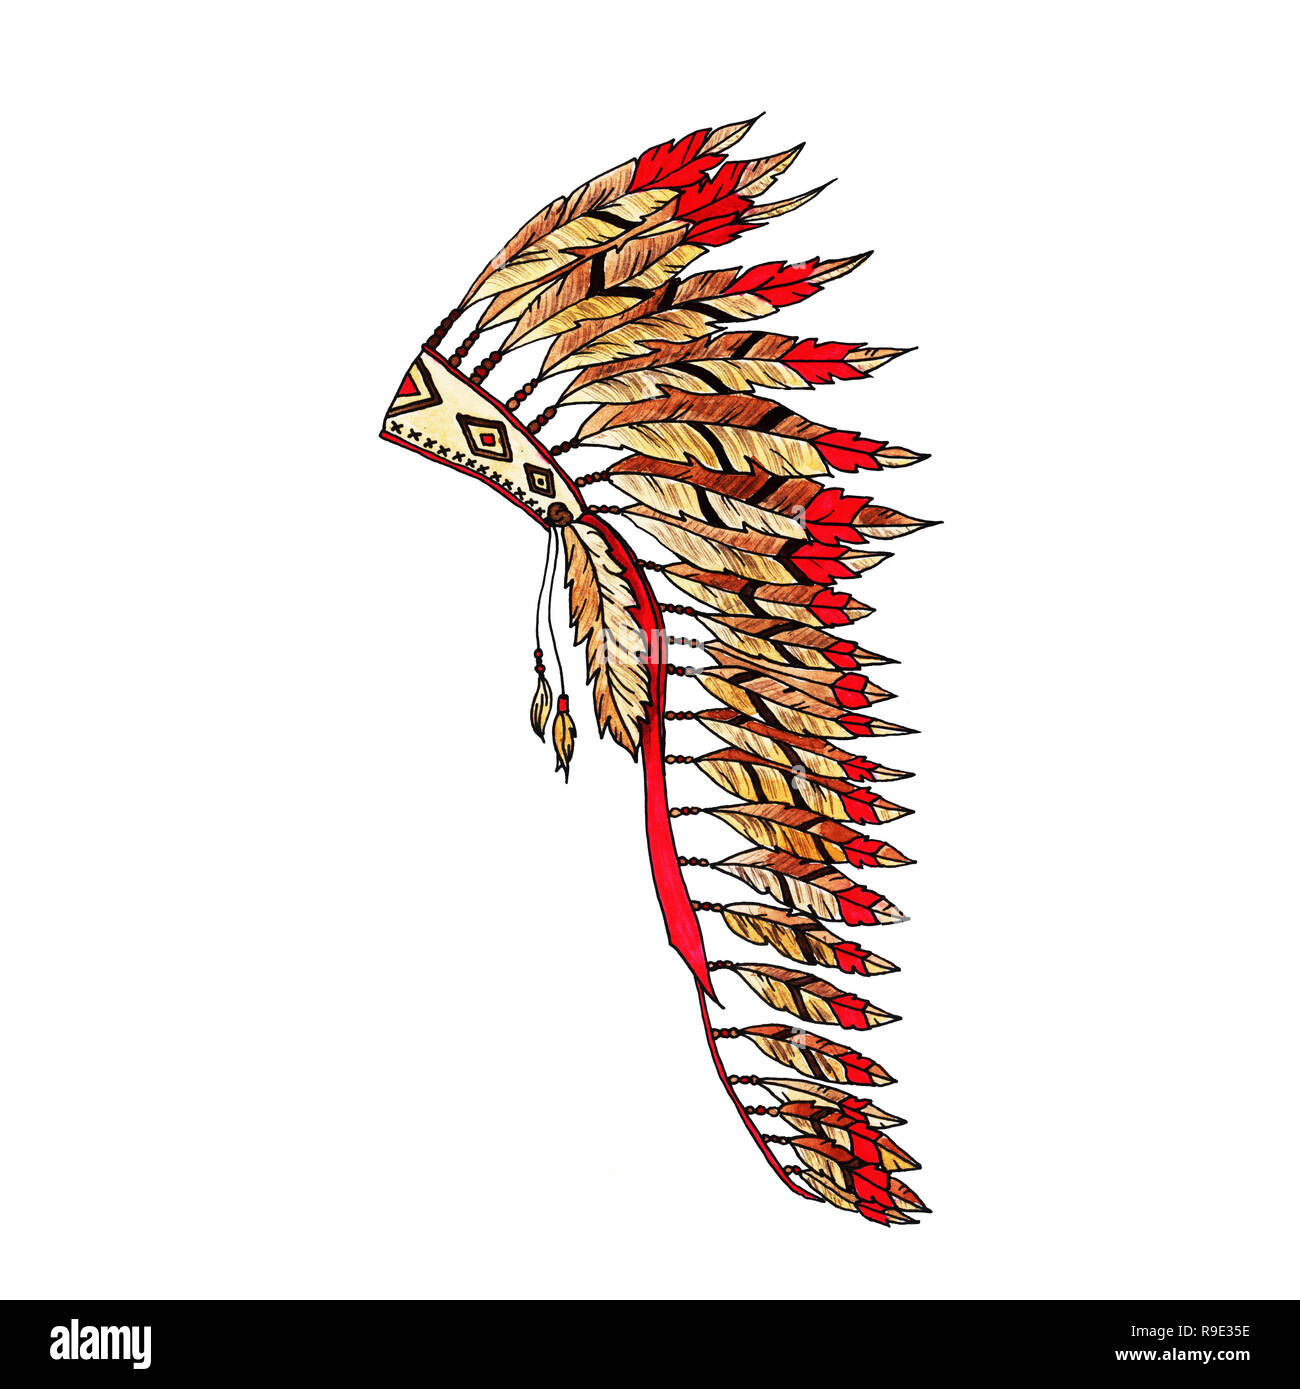 American painted Warbonnet Artwork. Eagle Feathers Hat. Native Indian Colorful Accessory. Headdress Realistic Drawing. Thanksgiving and Halloween Cost - Stock Image